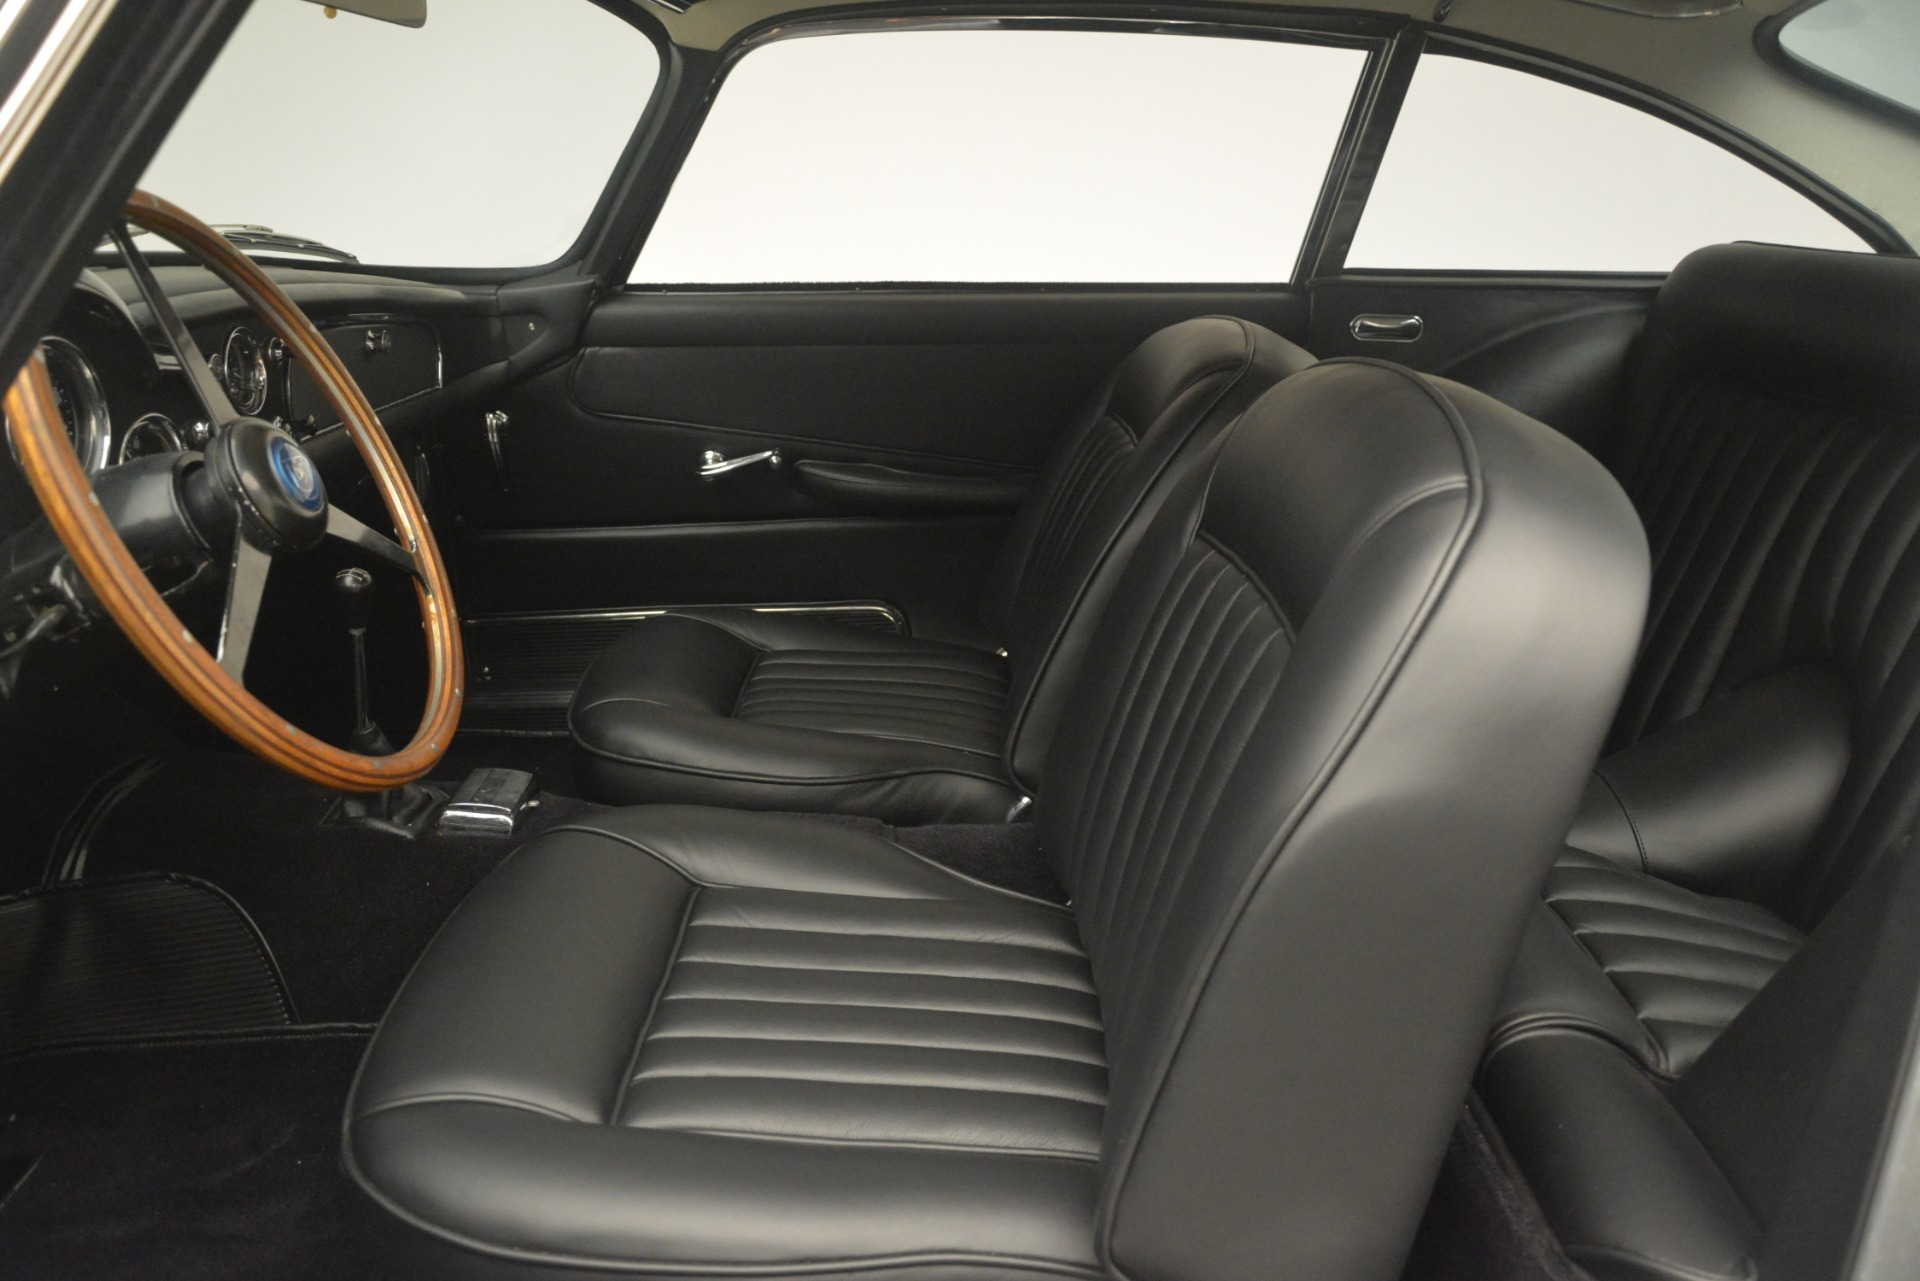 Used 1961 Aston Martin DB4 Series IV Coupe